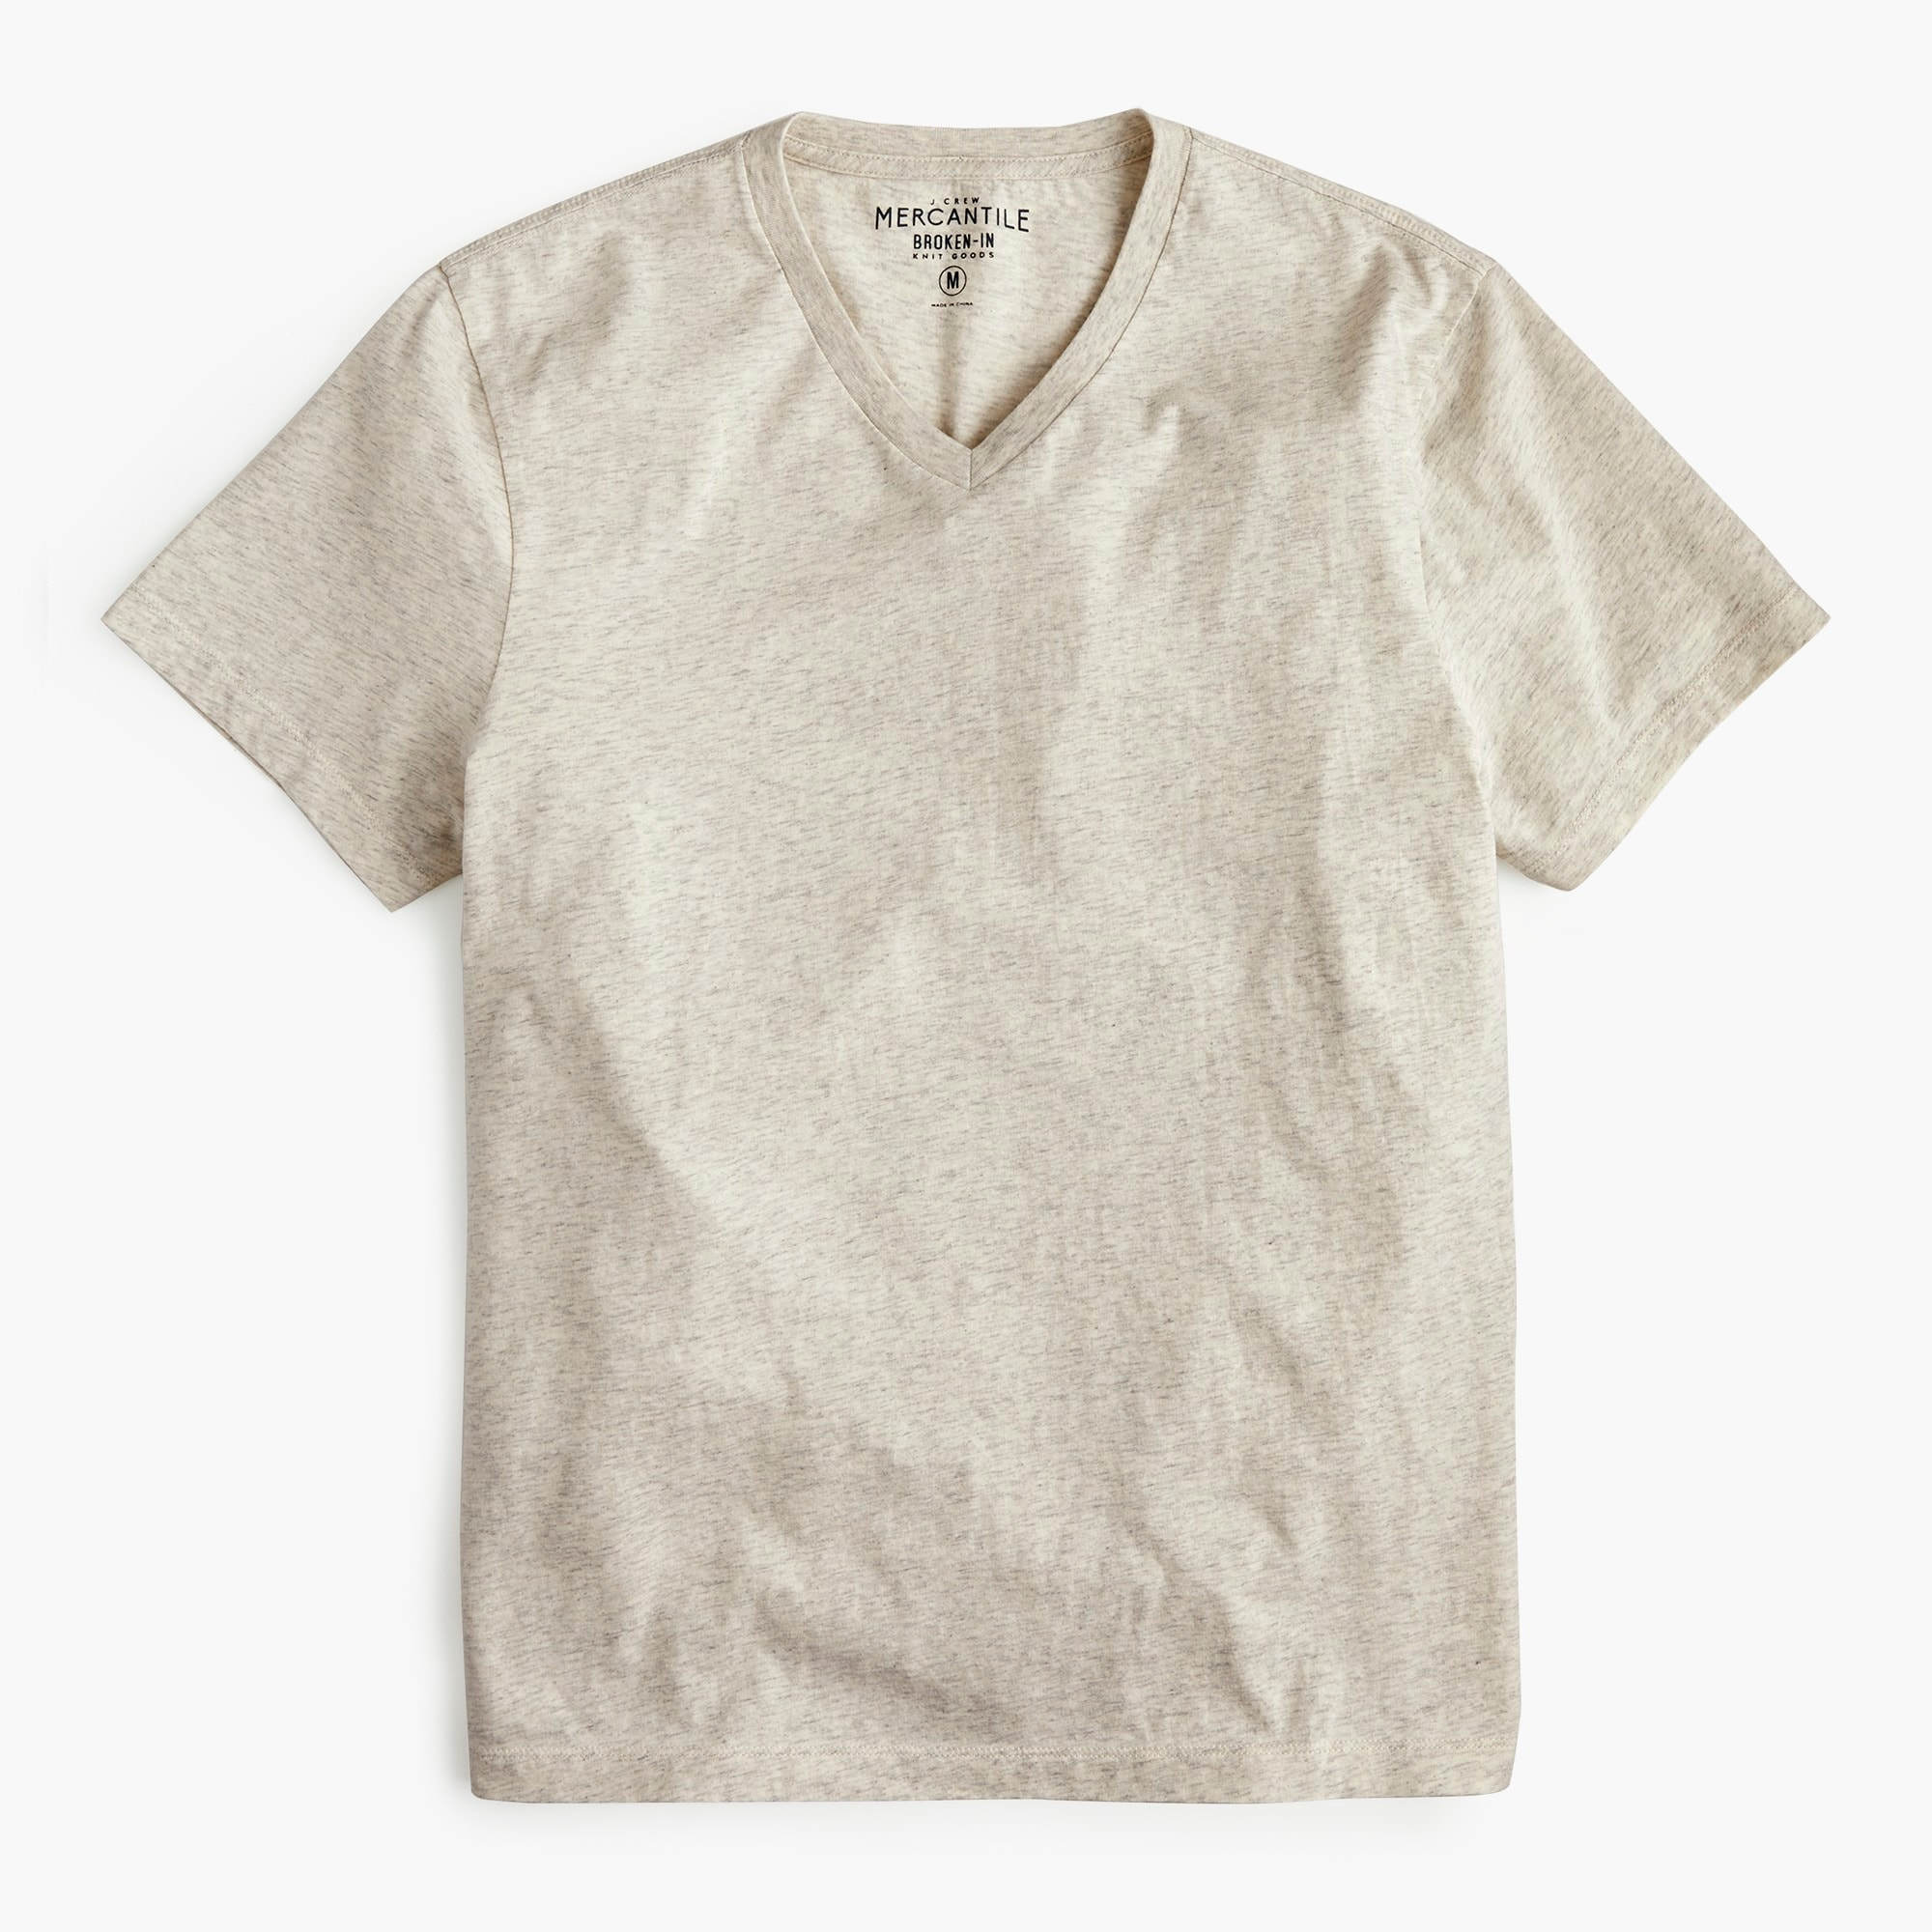 J.Crew Mercantile Broken-in heather V-neck T-shirt men t-shirts & polos c